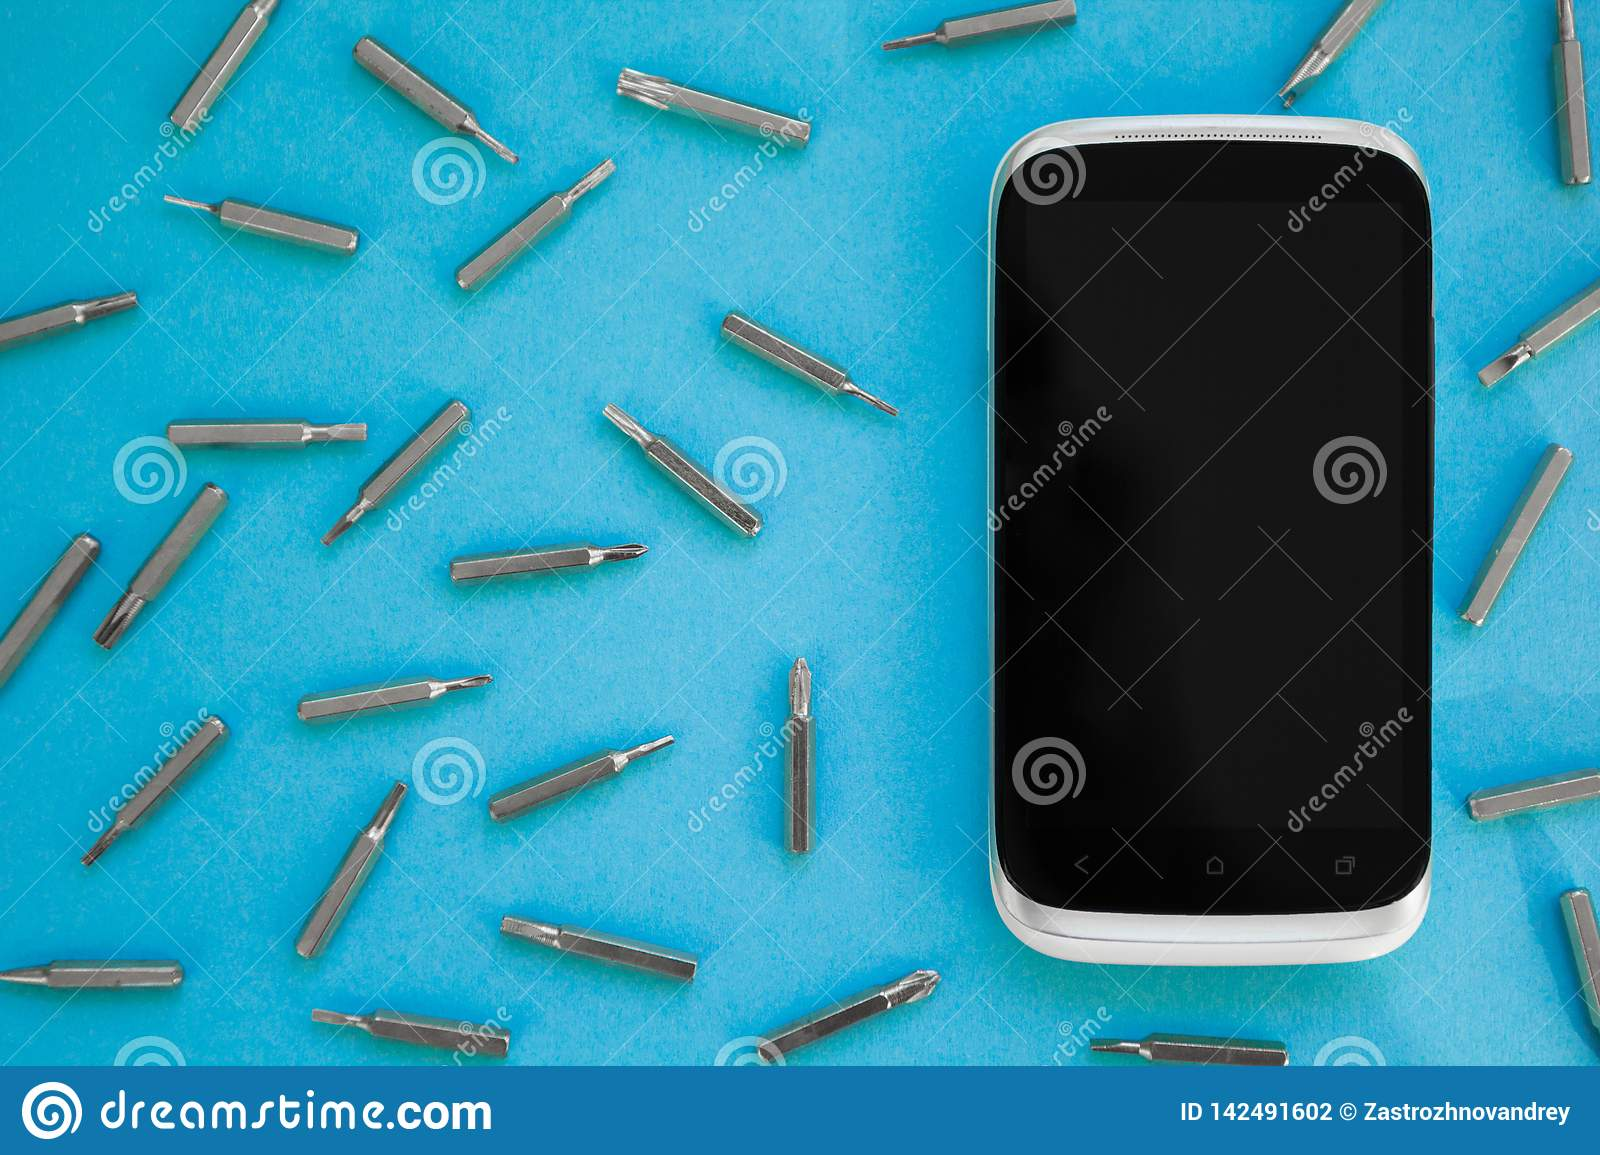 Mobile phone repairing, flat lay, top view, blue background, concept